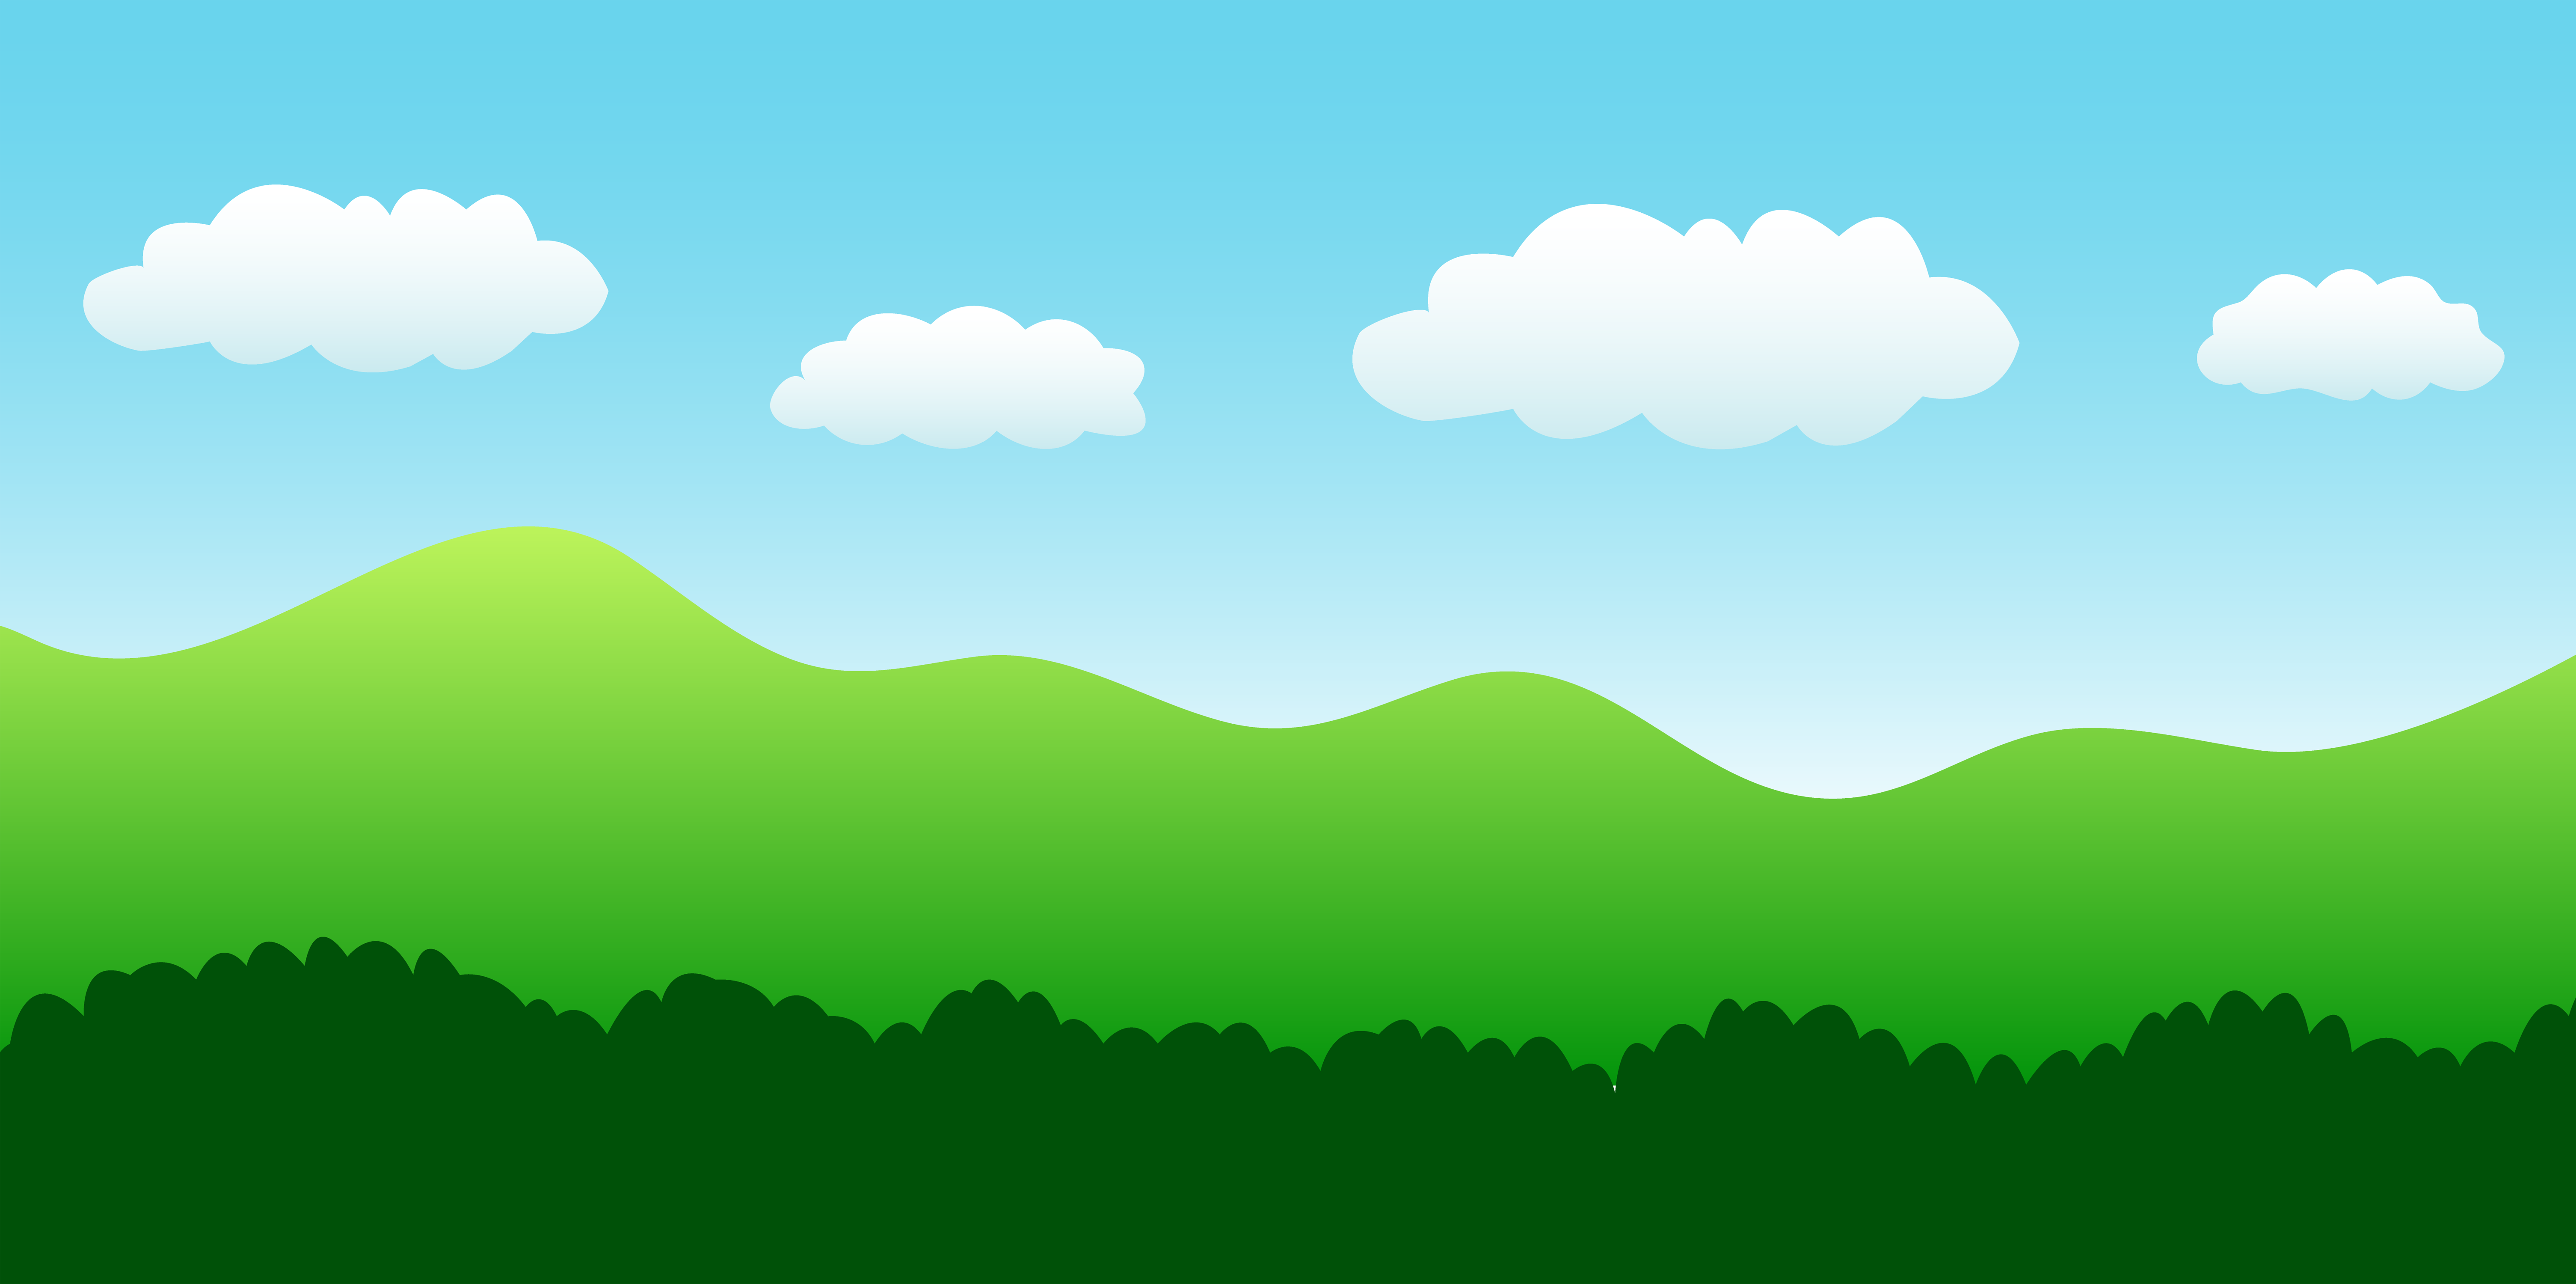 Landscape clipart clipart library stock Cartoon Landscape ClipArt free image clipart library stock